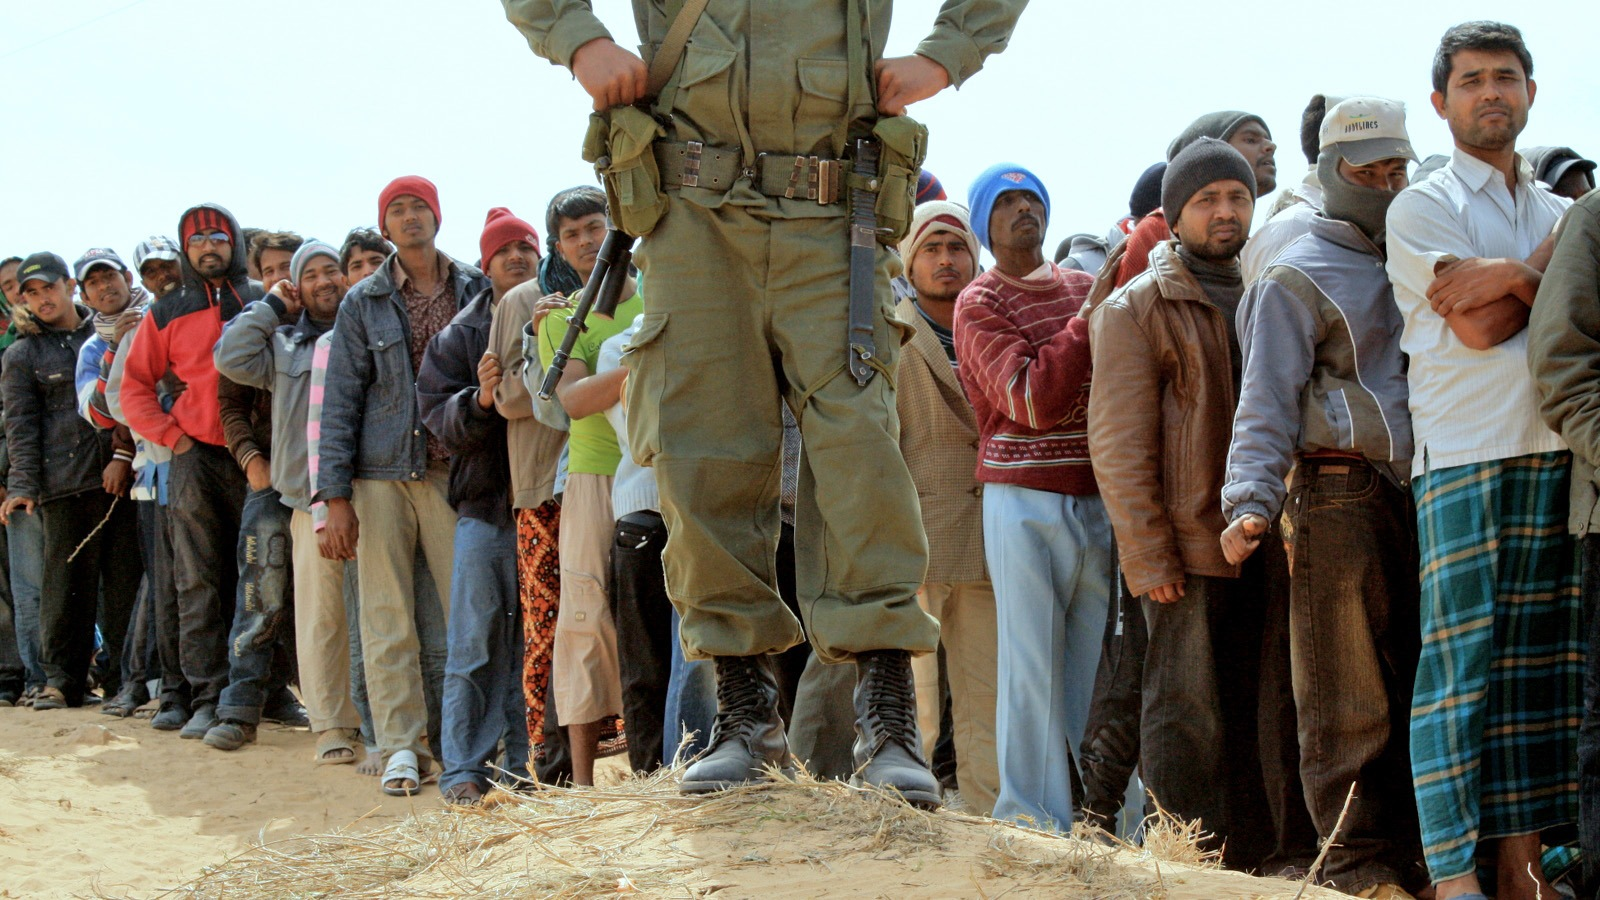 People line up for food at Choucha camp, at the Libya-Tunisia border